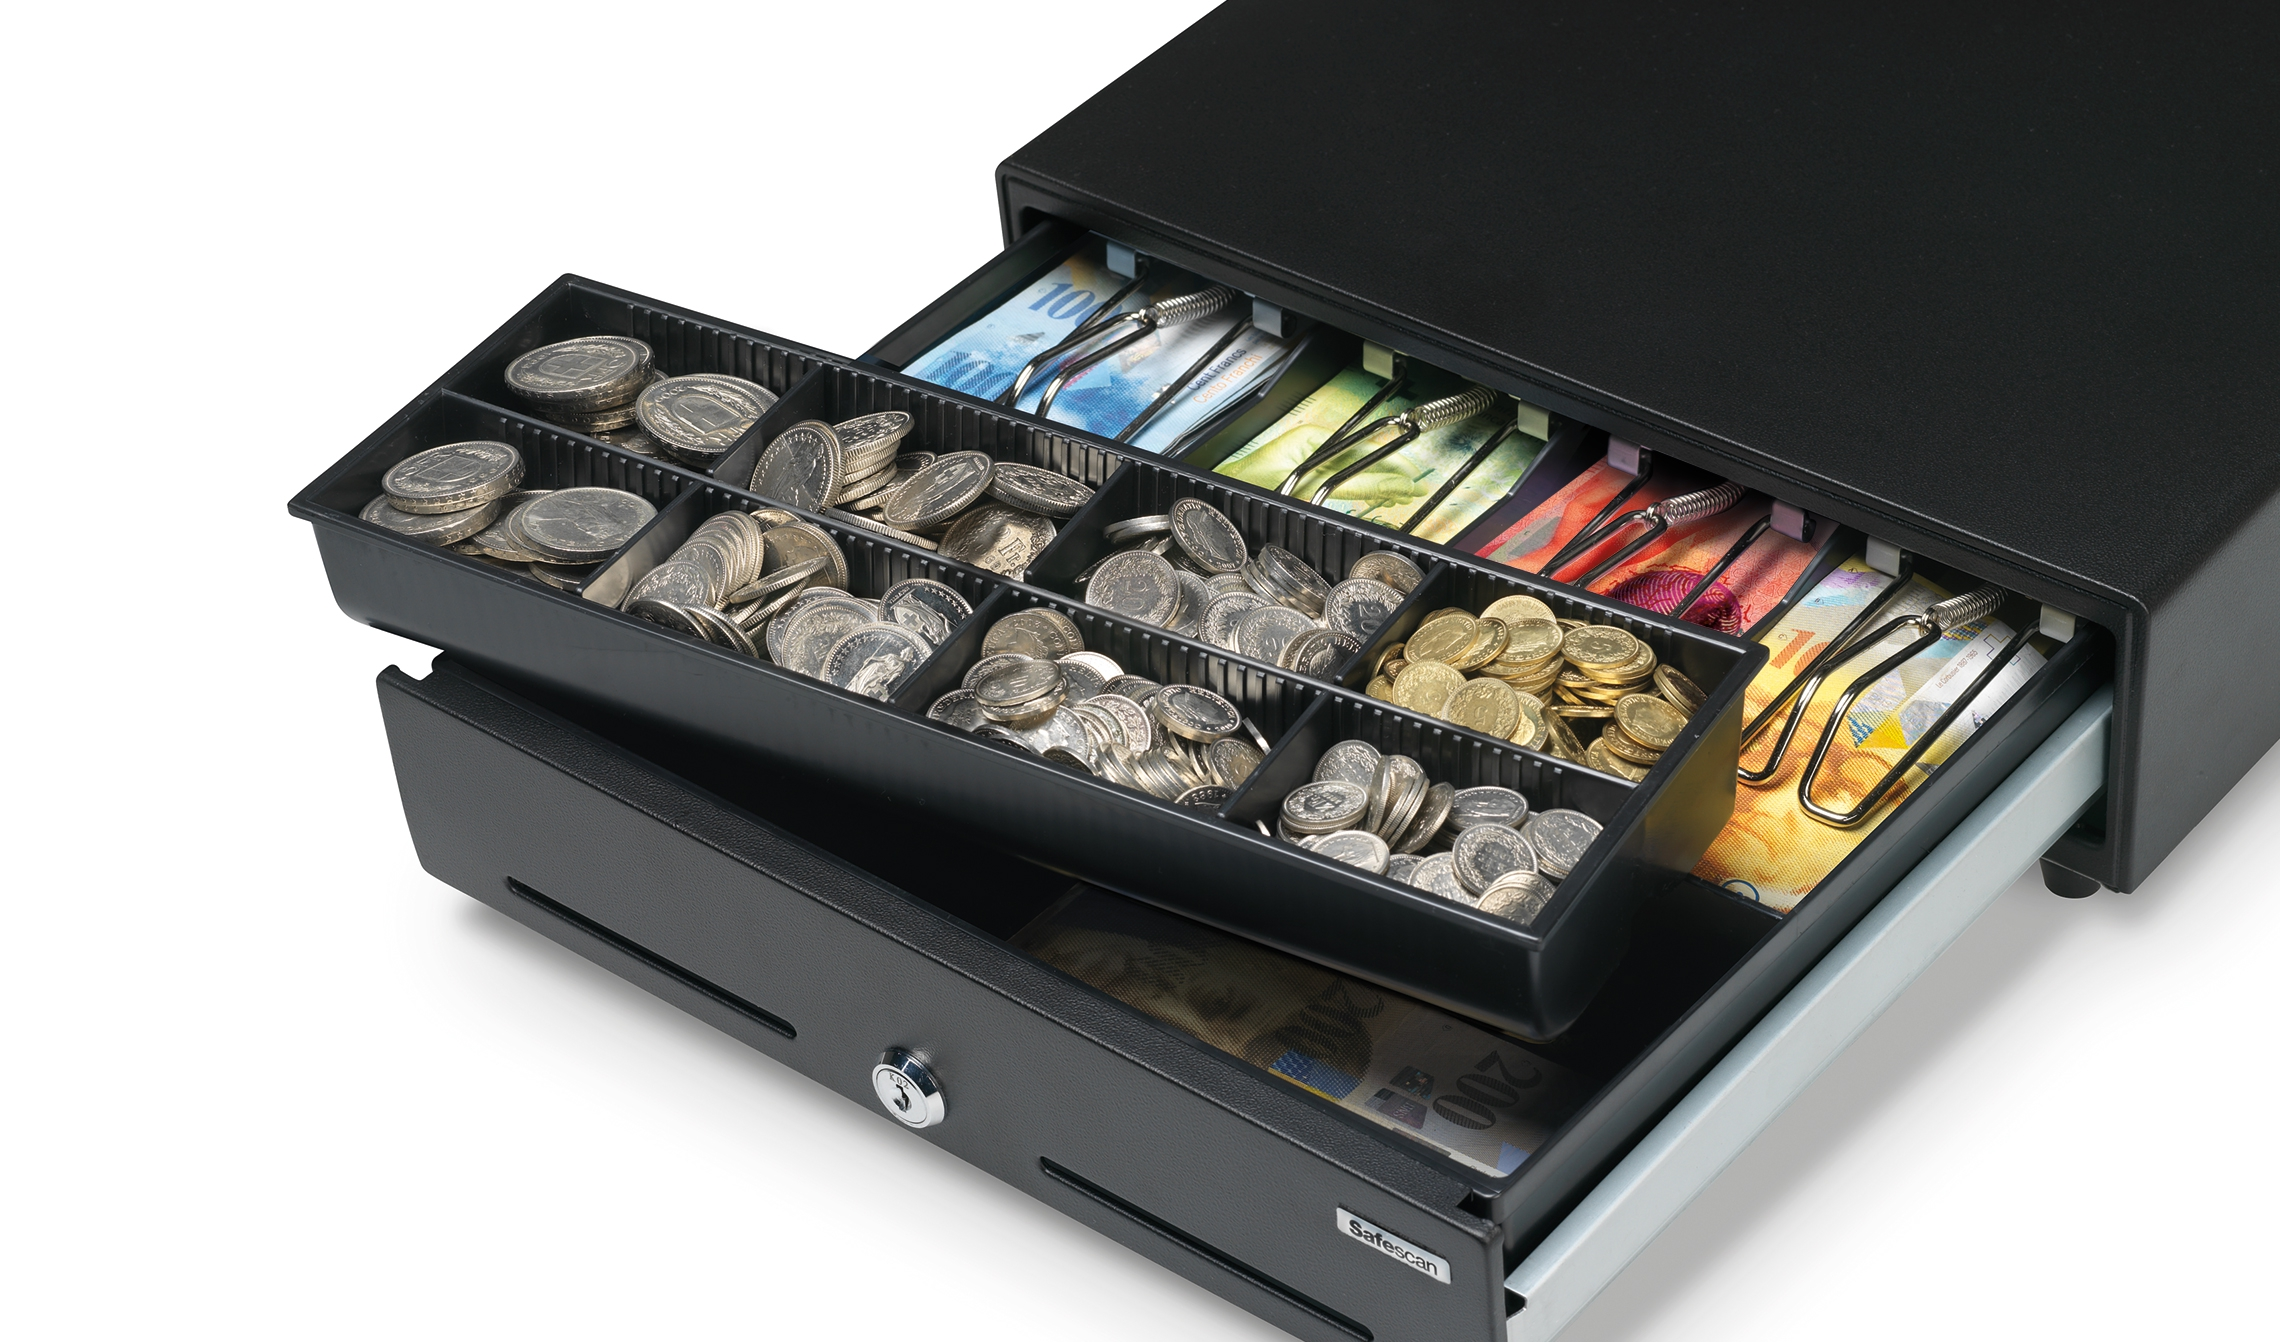 safescan-3540t-removable-tray